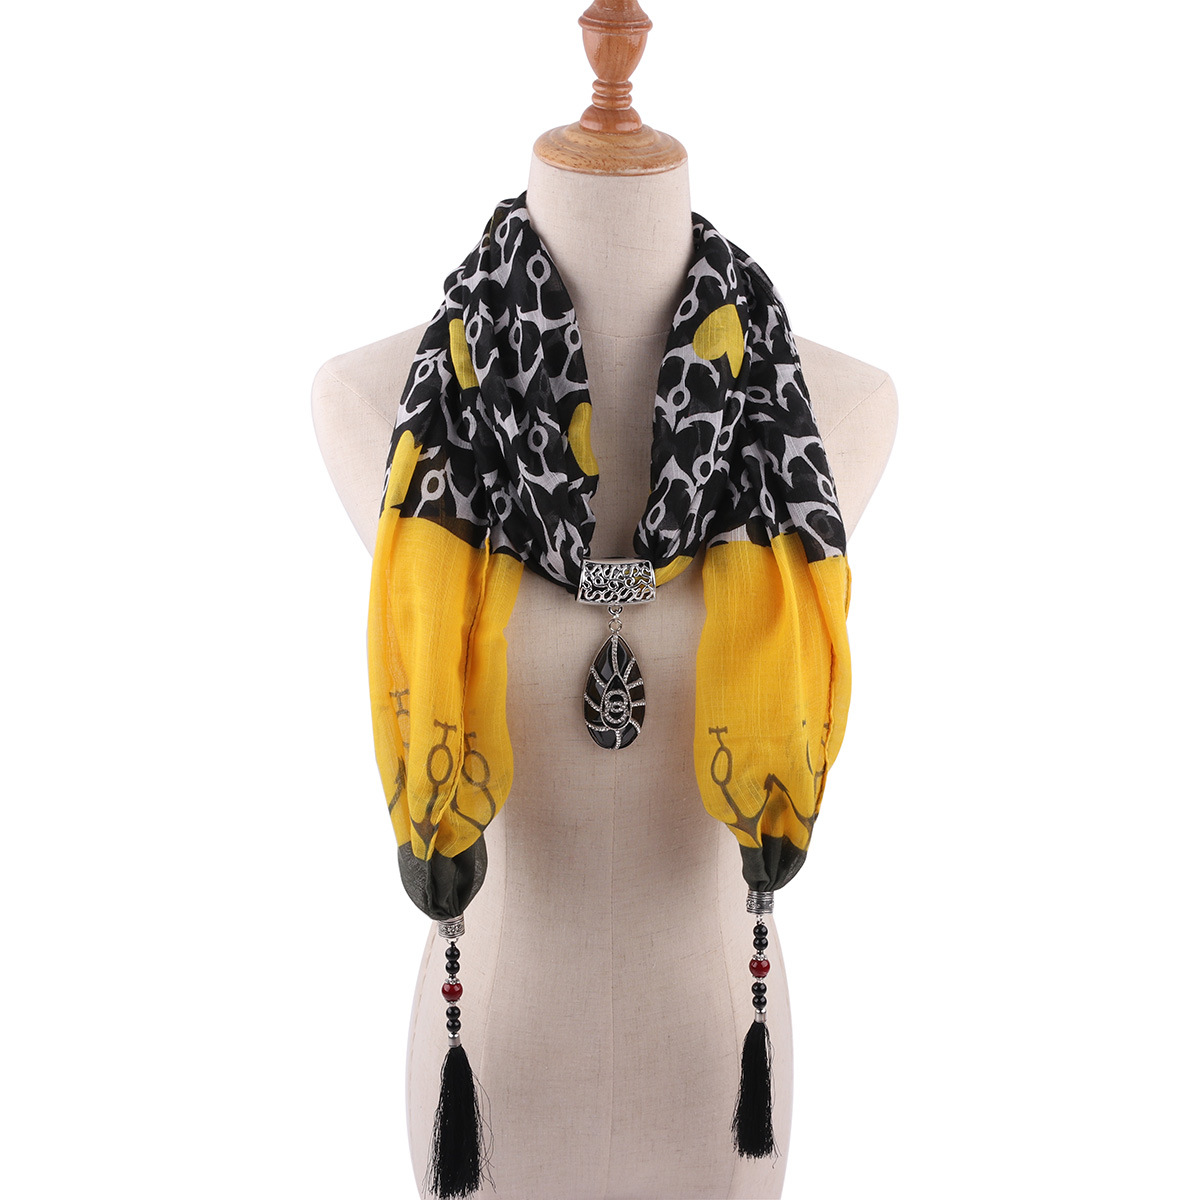 Leopard print tassel pendant  womens shawl necklace national style scarf Mongolian garment accessories 1840